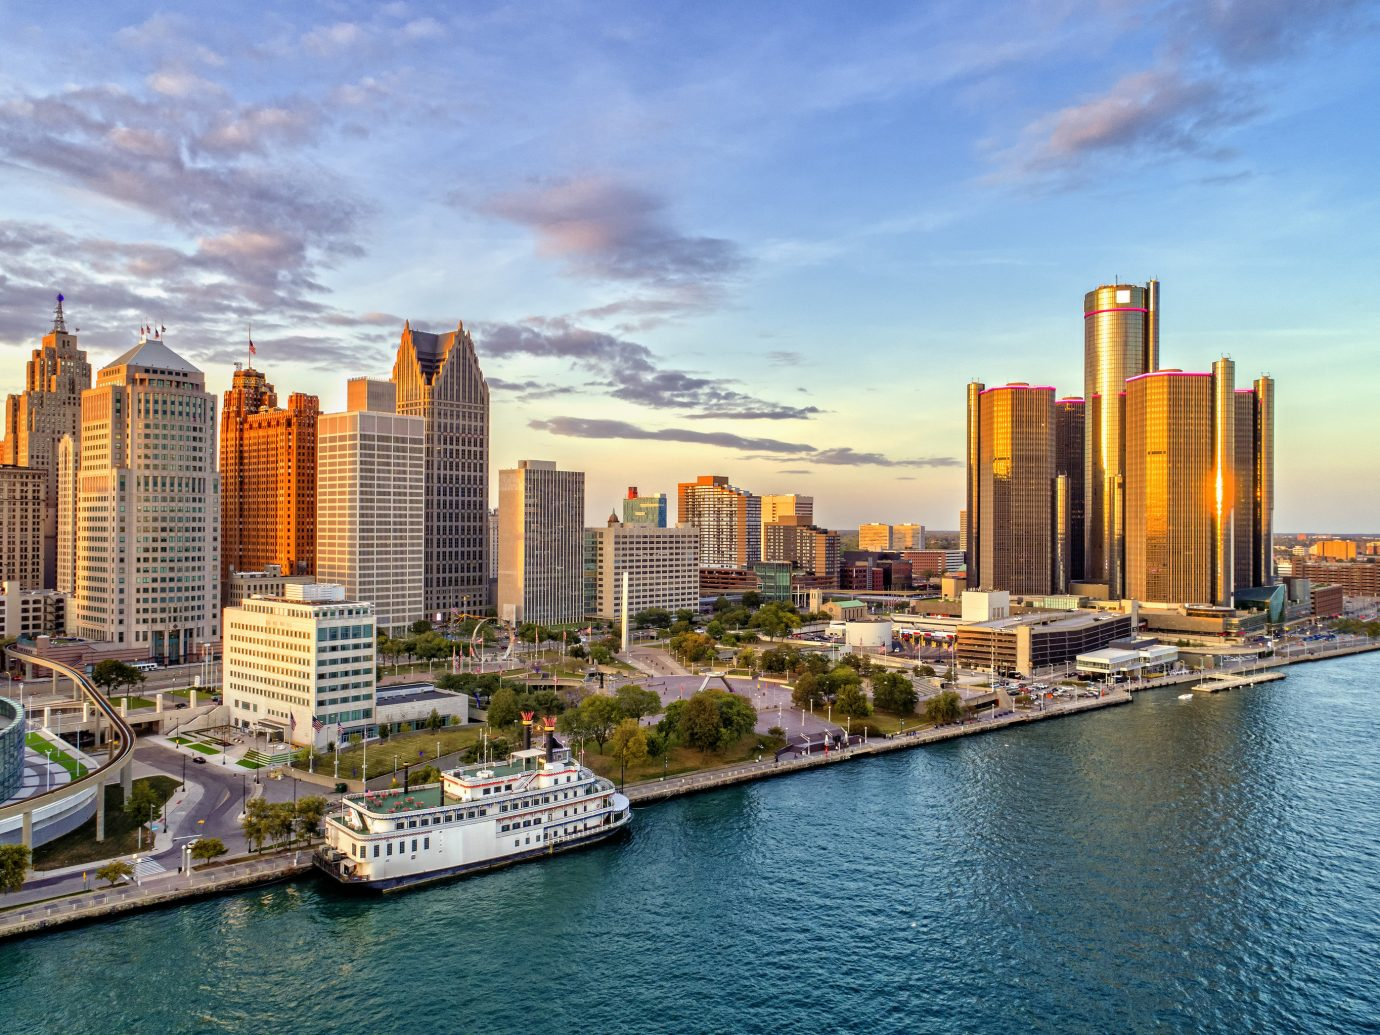 Skyline view of Detroit